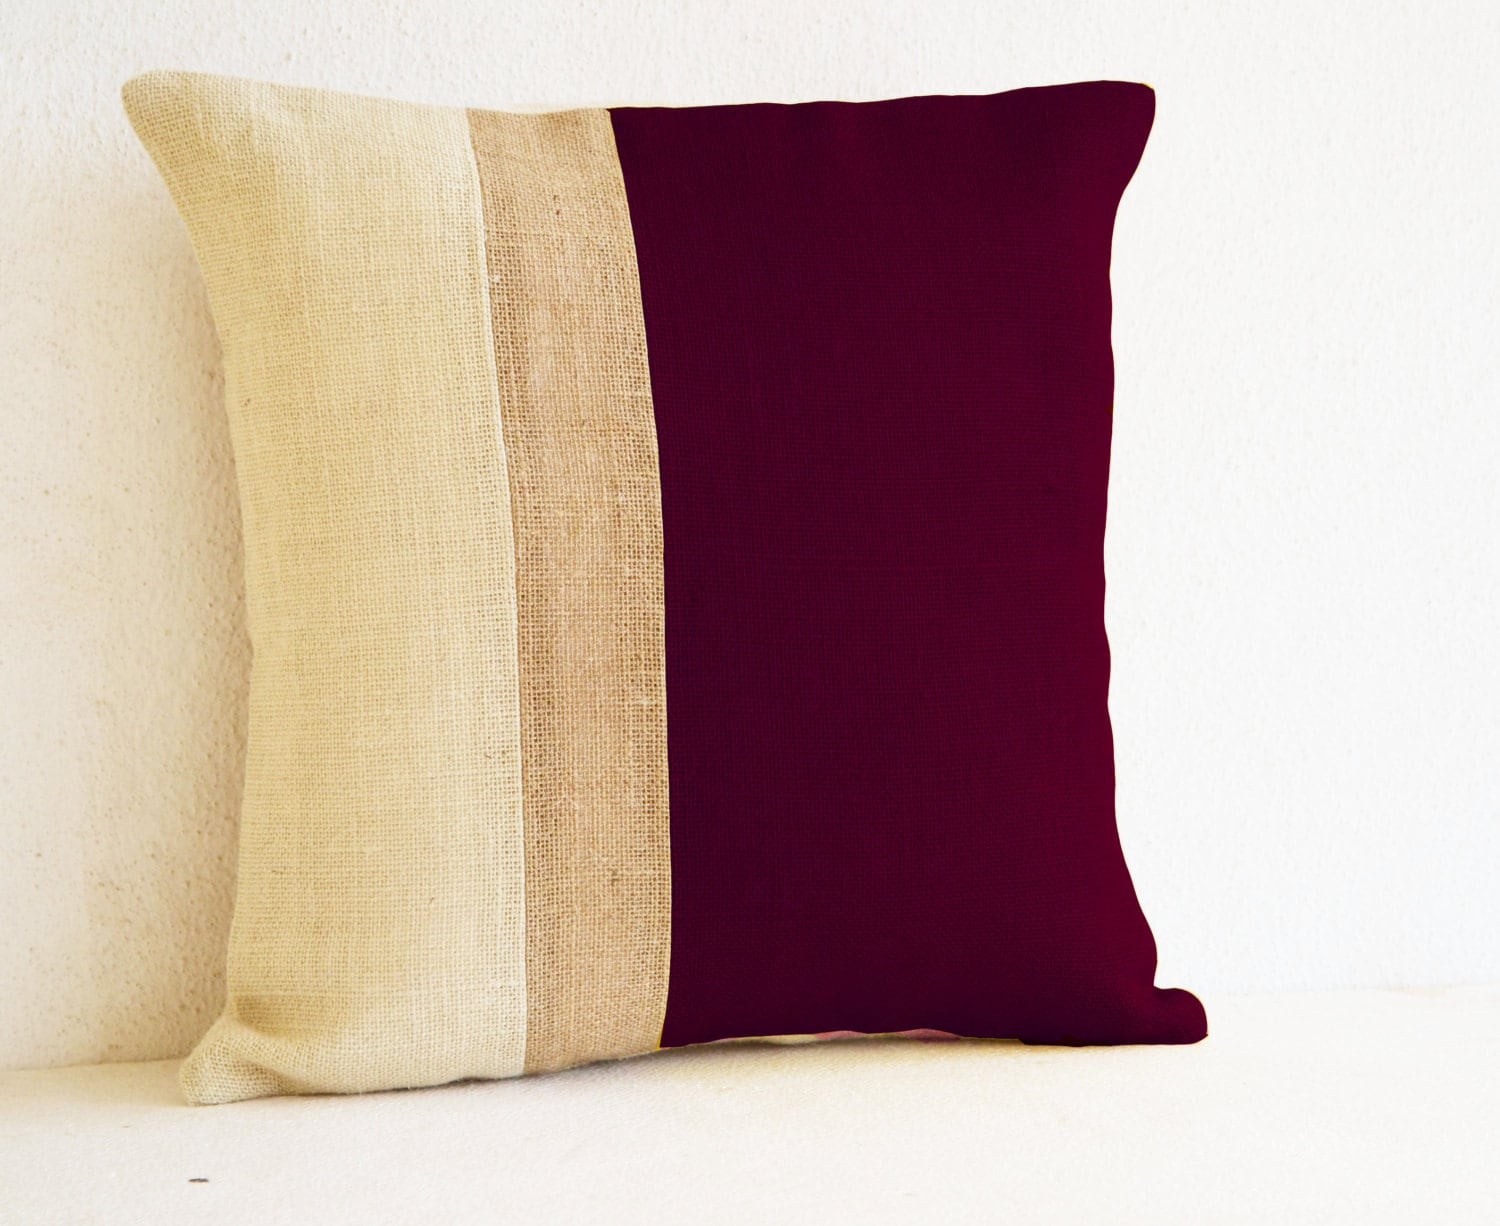 Decorative Pillow Covers Burgundy Burlap Pillow Color Block